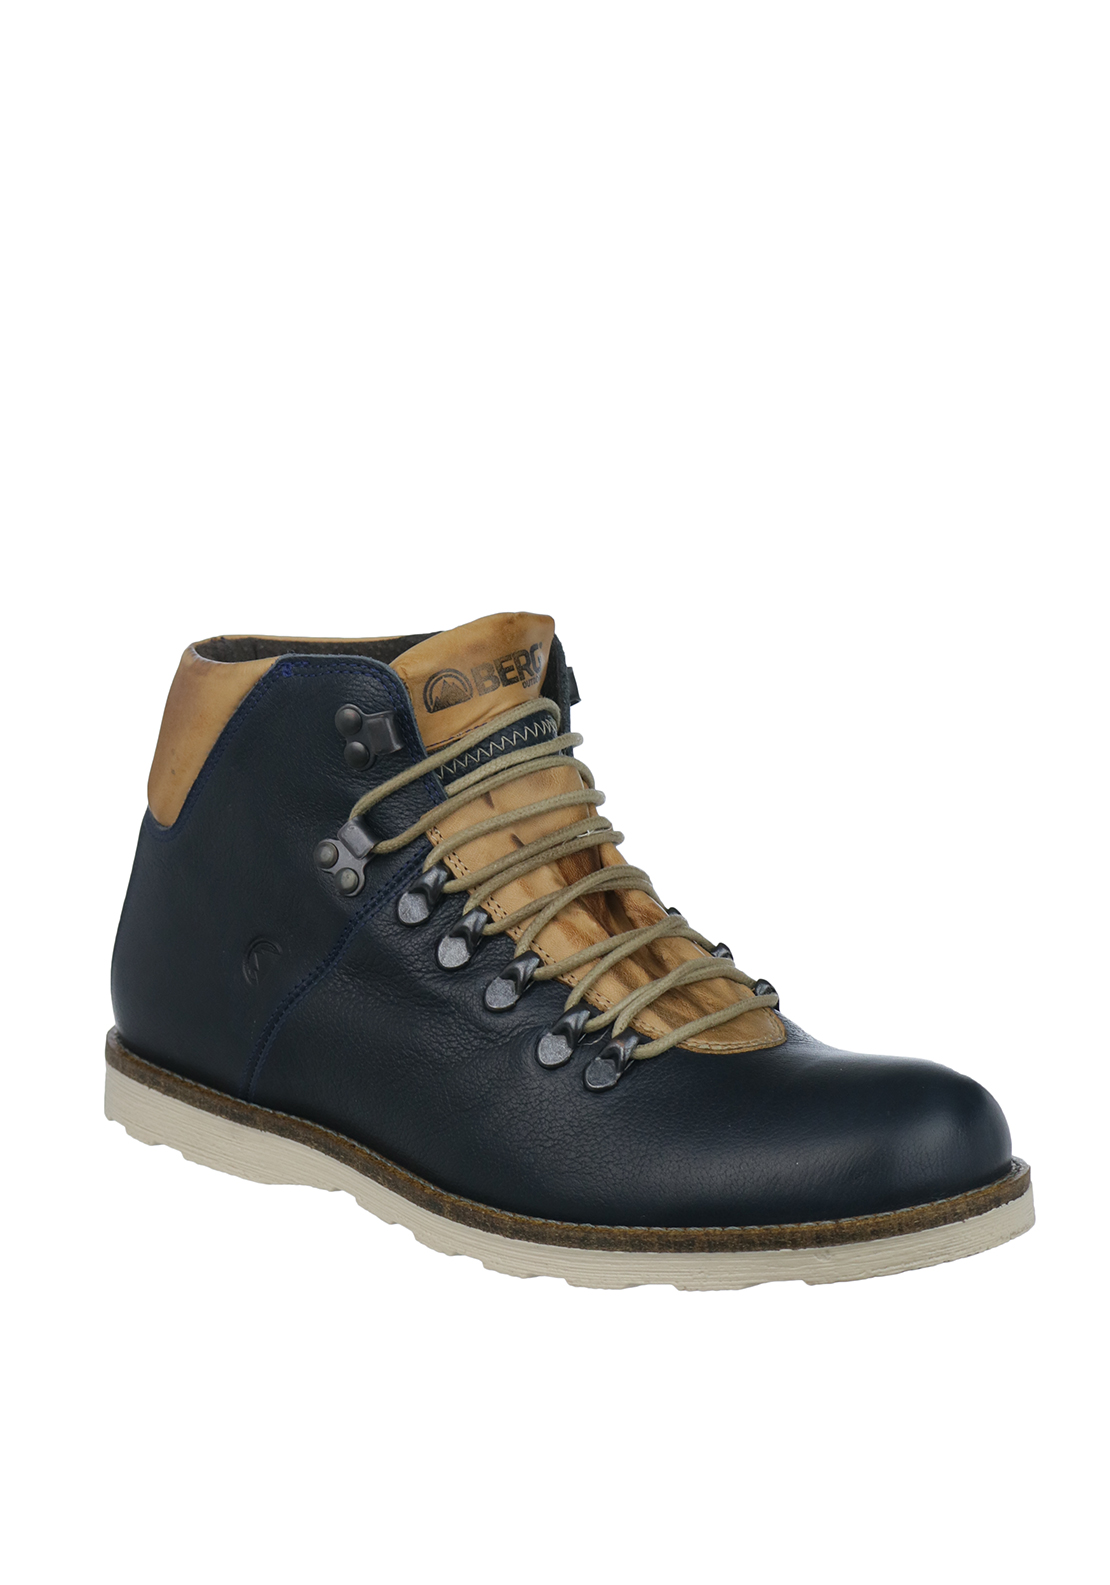 Berg Mens Bombay Leather Boots, Navy